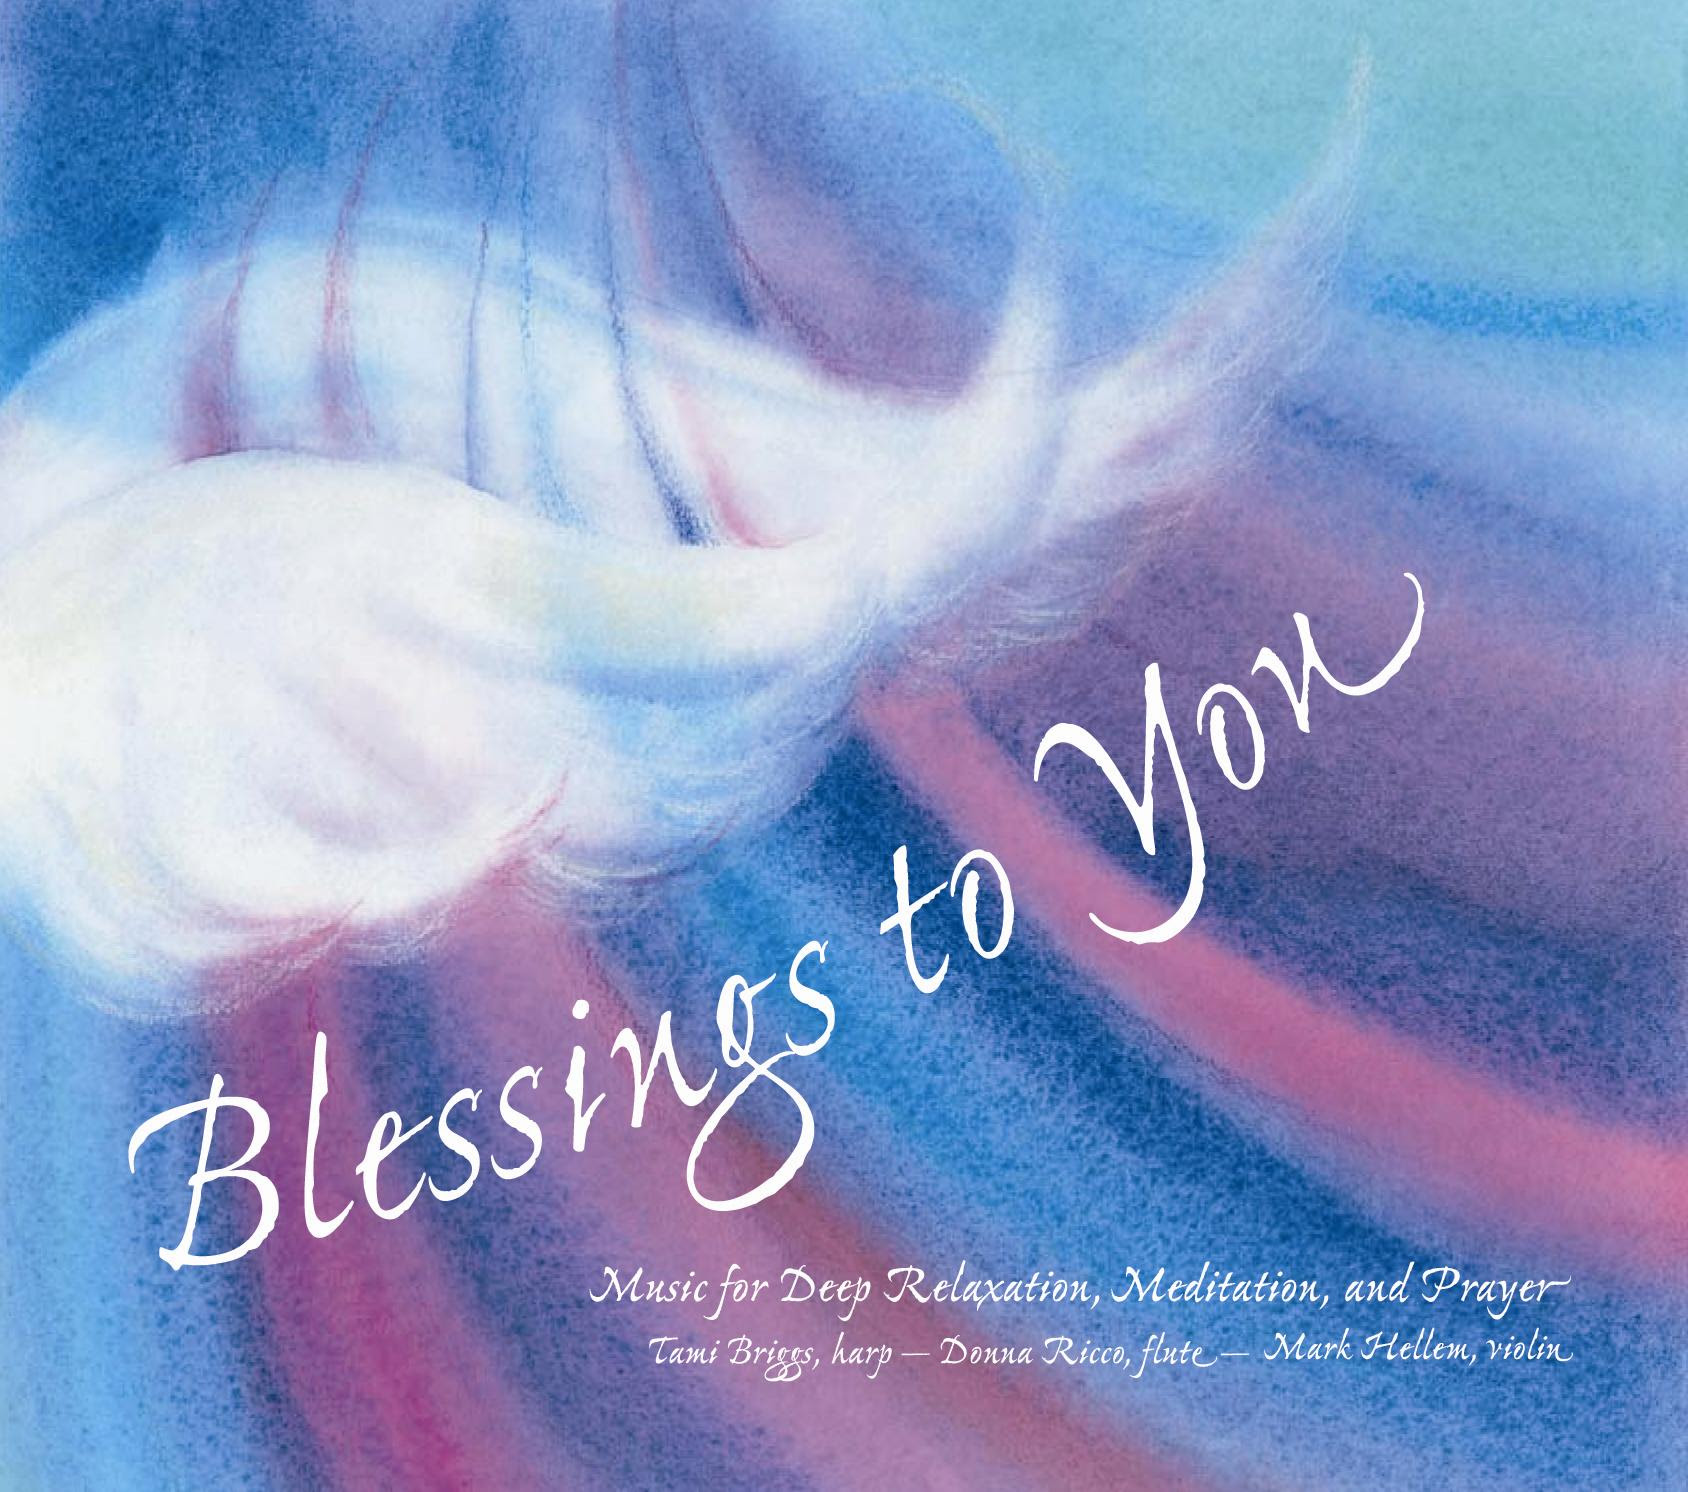 Blessings To You Musical Reflections